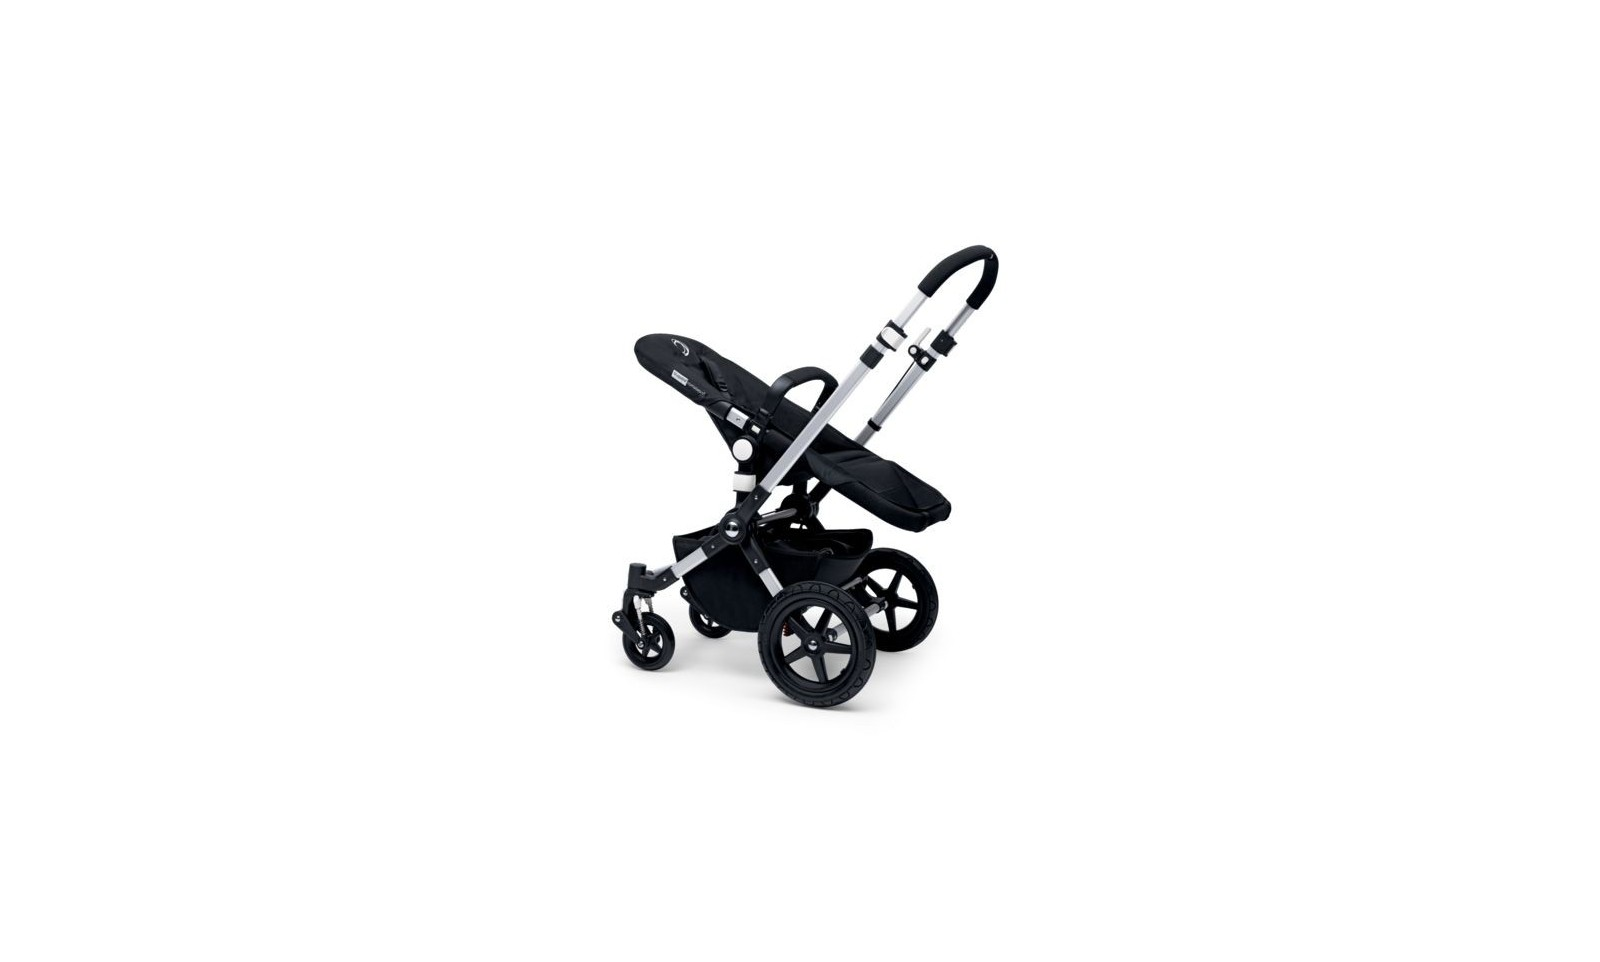 Bugaboo Cameleon 3 Maximum Weight Bugaboo Cameleon 3 Base